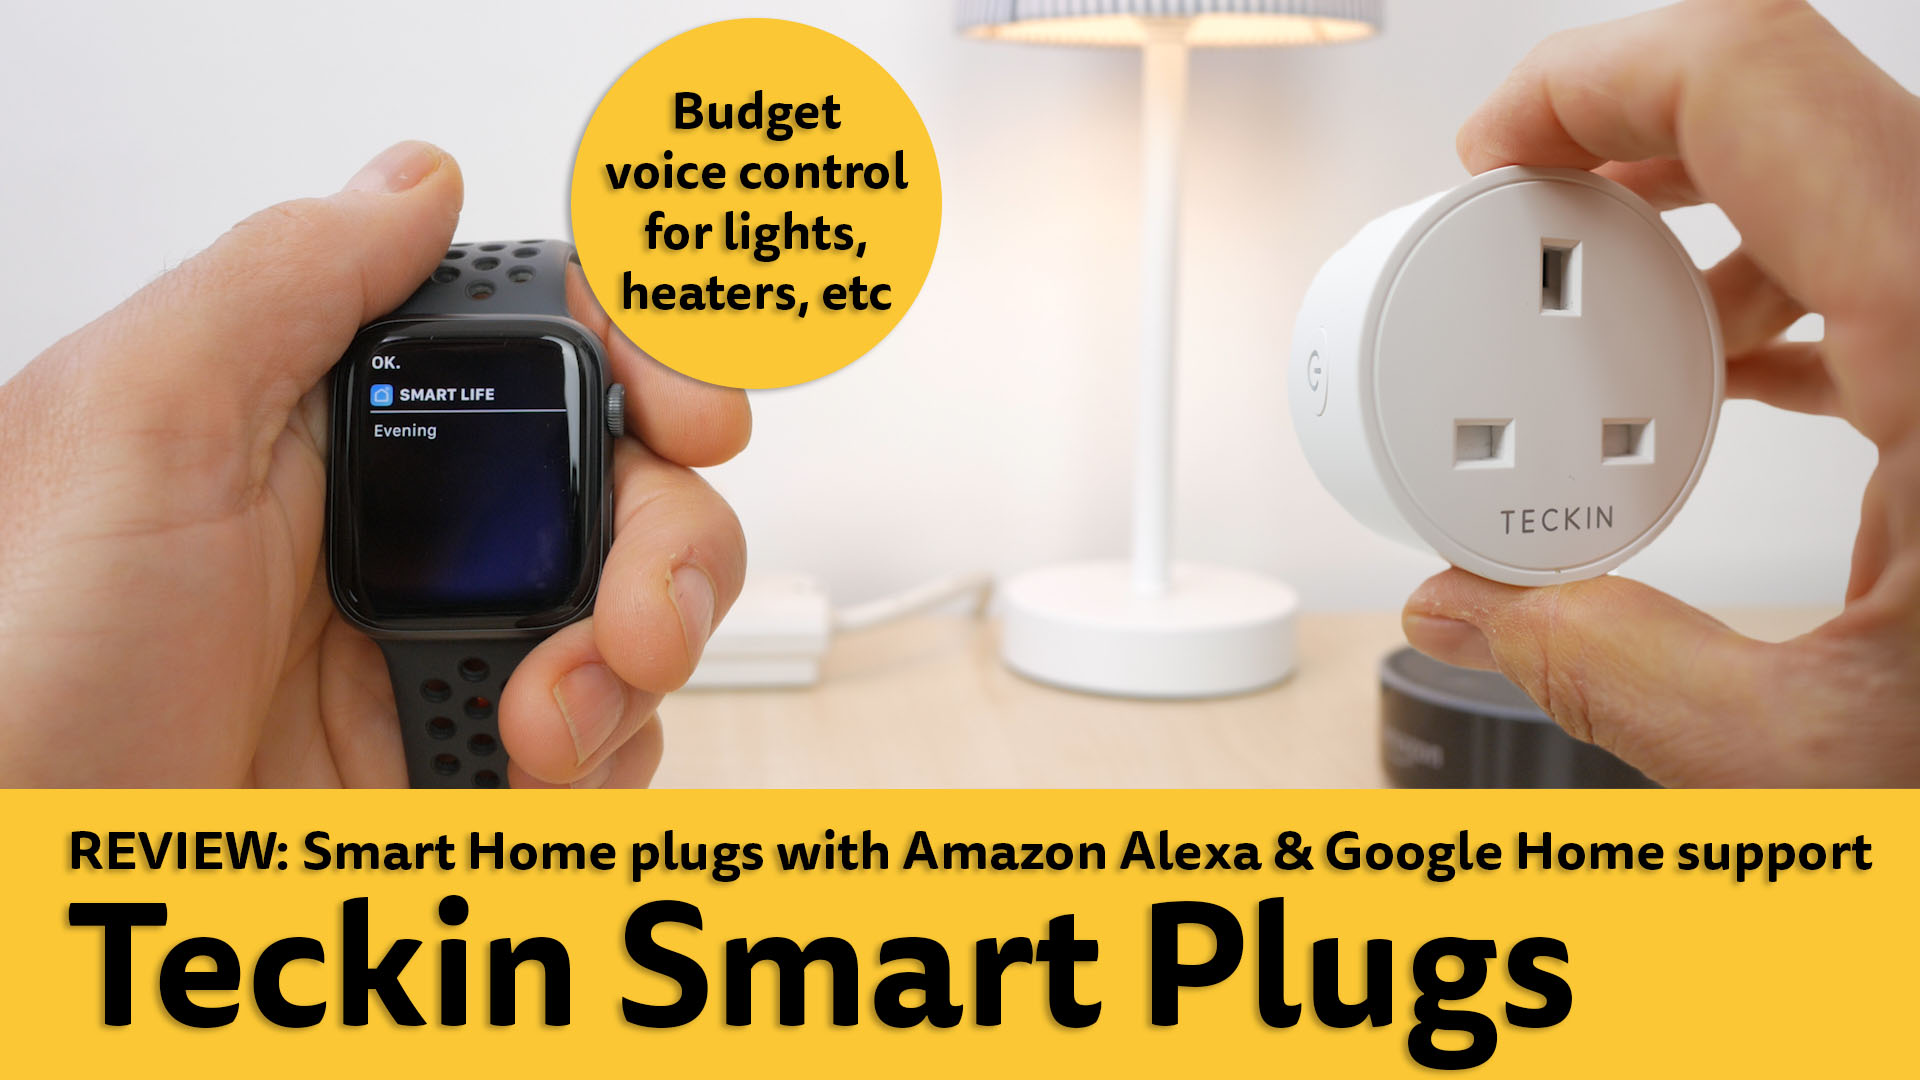 Review: Teckin Smart Plugs  Budget smart home with Amazon Alexa